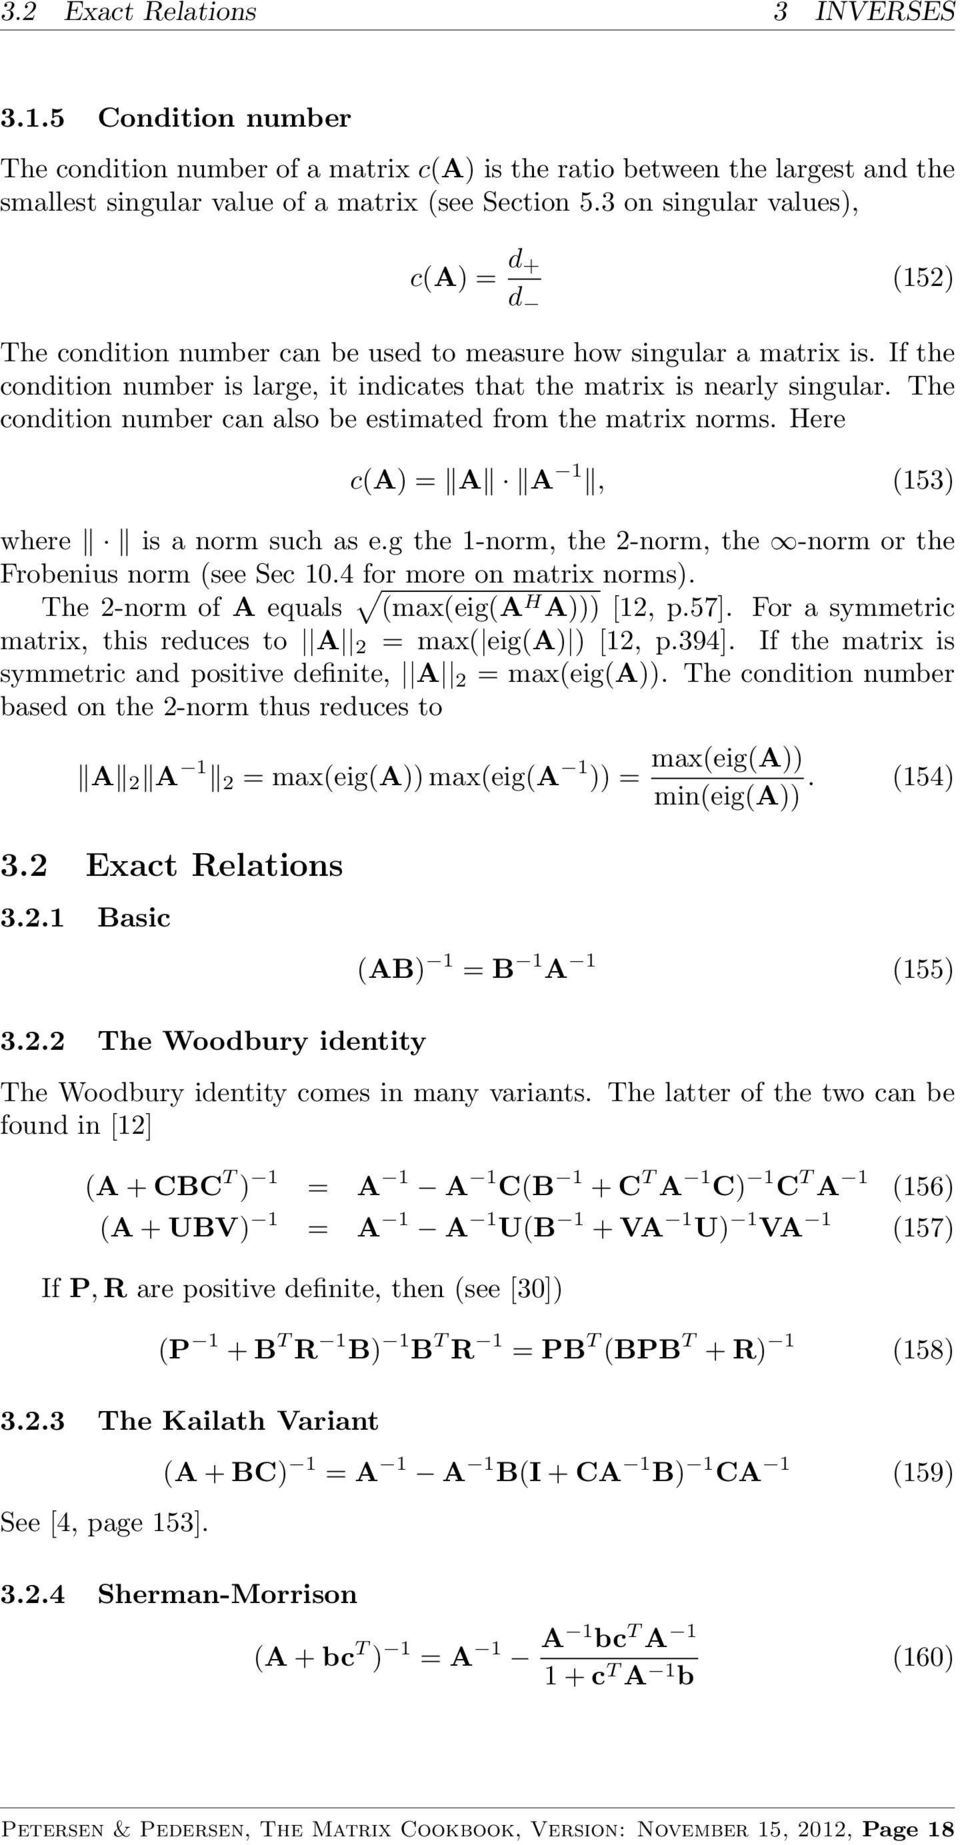 The condition number can also be estimated from the matrix norms. Here c(a) = A A 1, (153) where is a norm such as e.g the 1-norm, the -norm, the -norm or the Frobenius norm (see Sec 10.